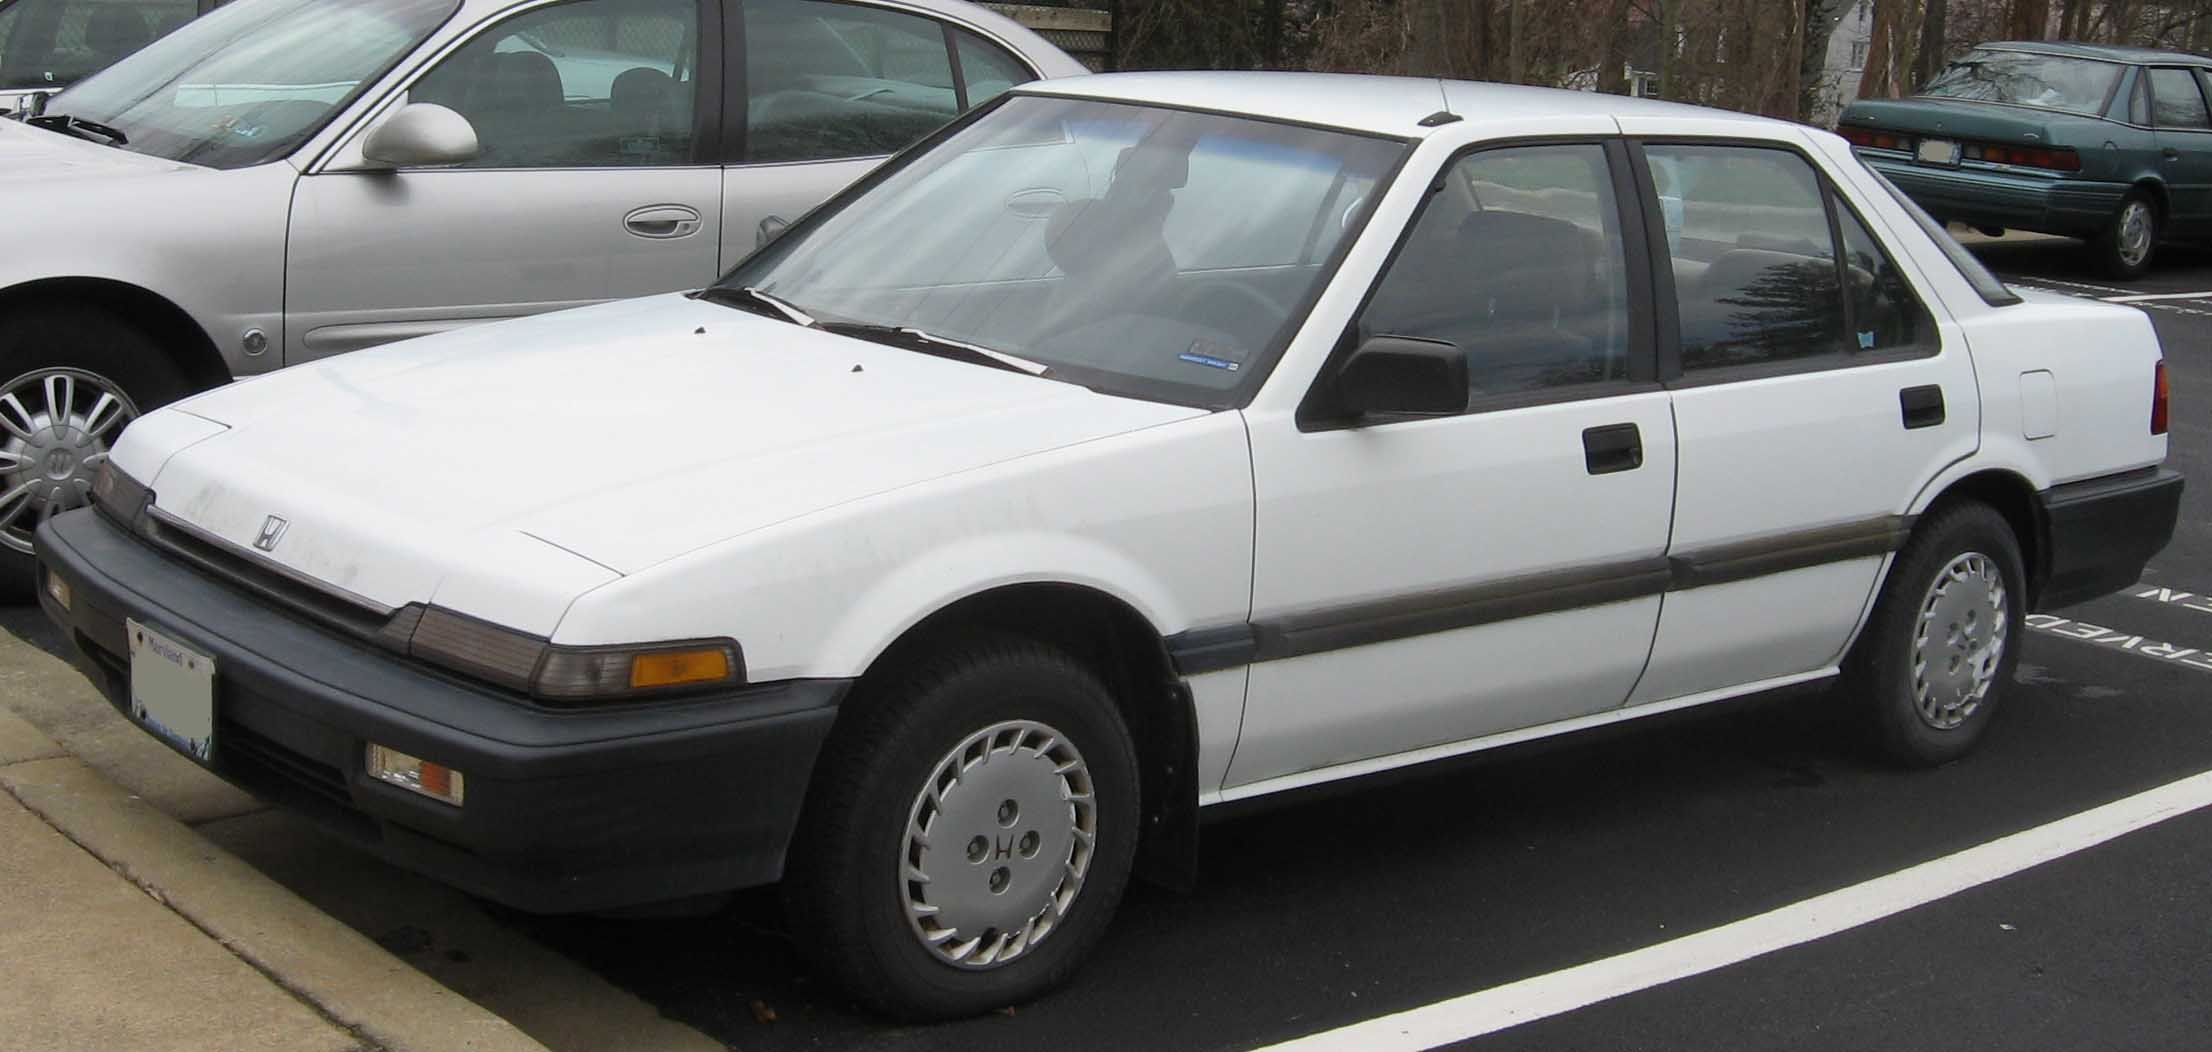 File:3rd Honda Accord DX sedan.jpg